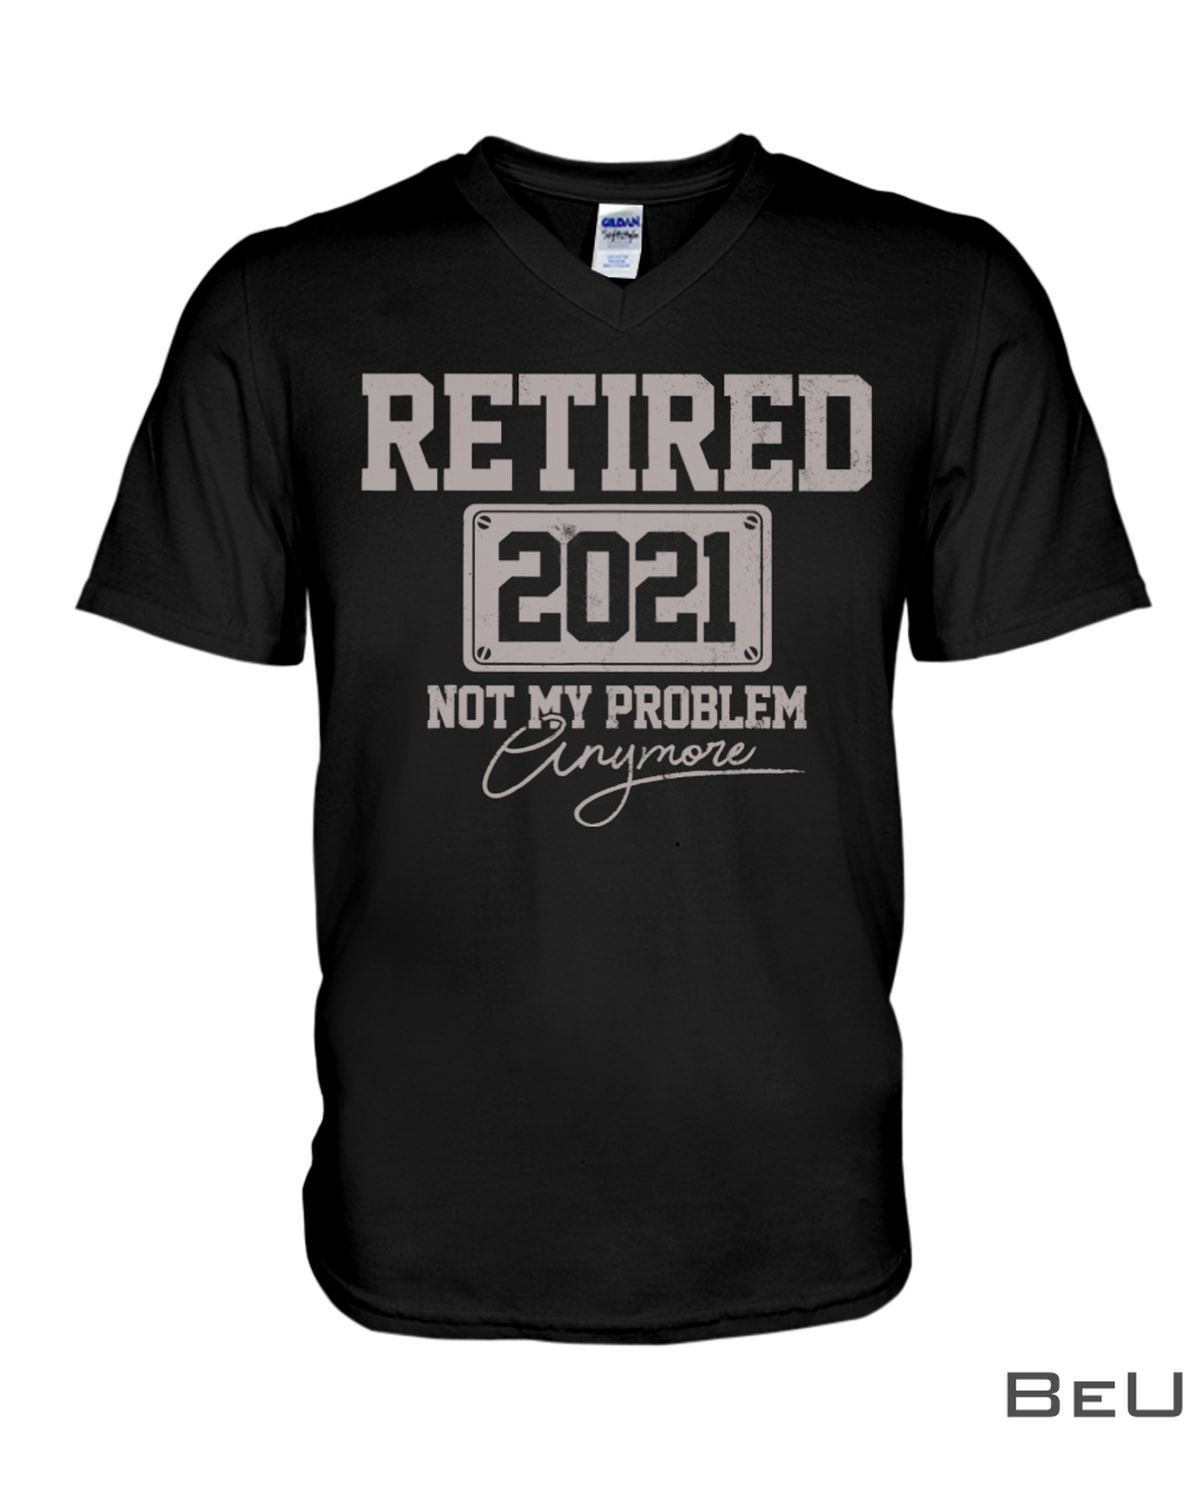 Retired 2021 Not My Problem Anymore Shirtx